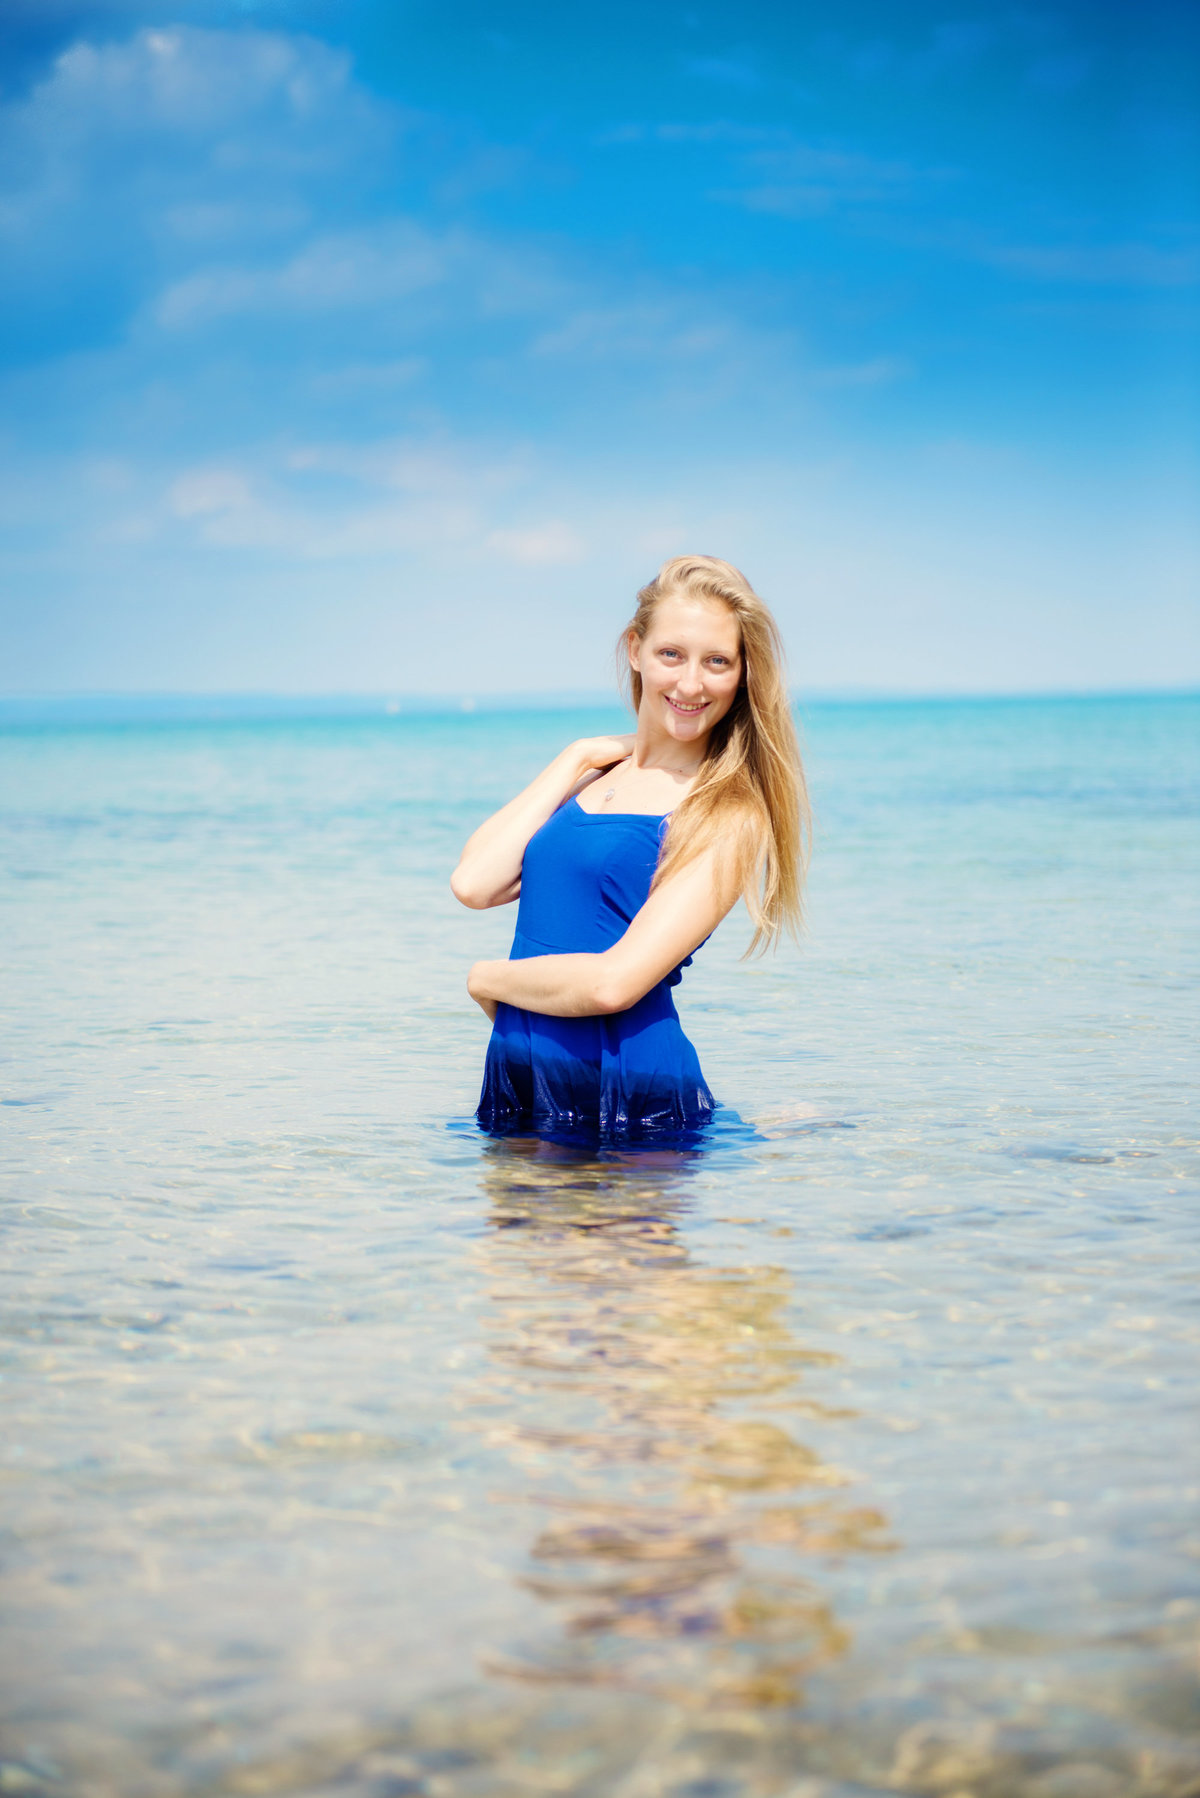 northern michigan senior picture photographers